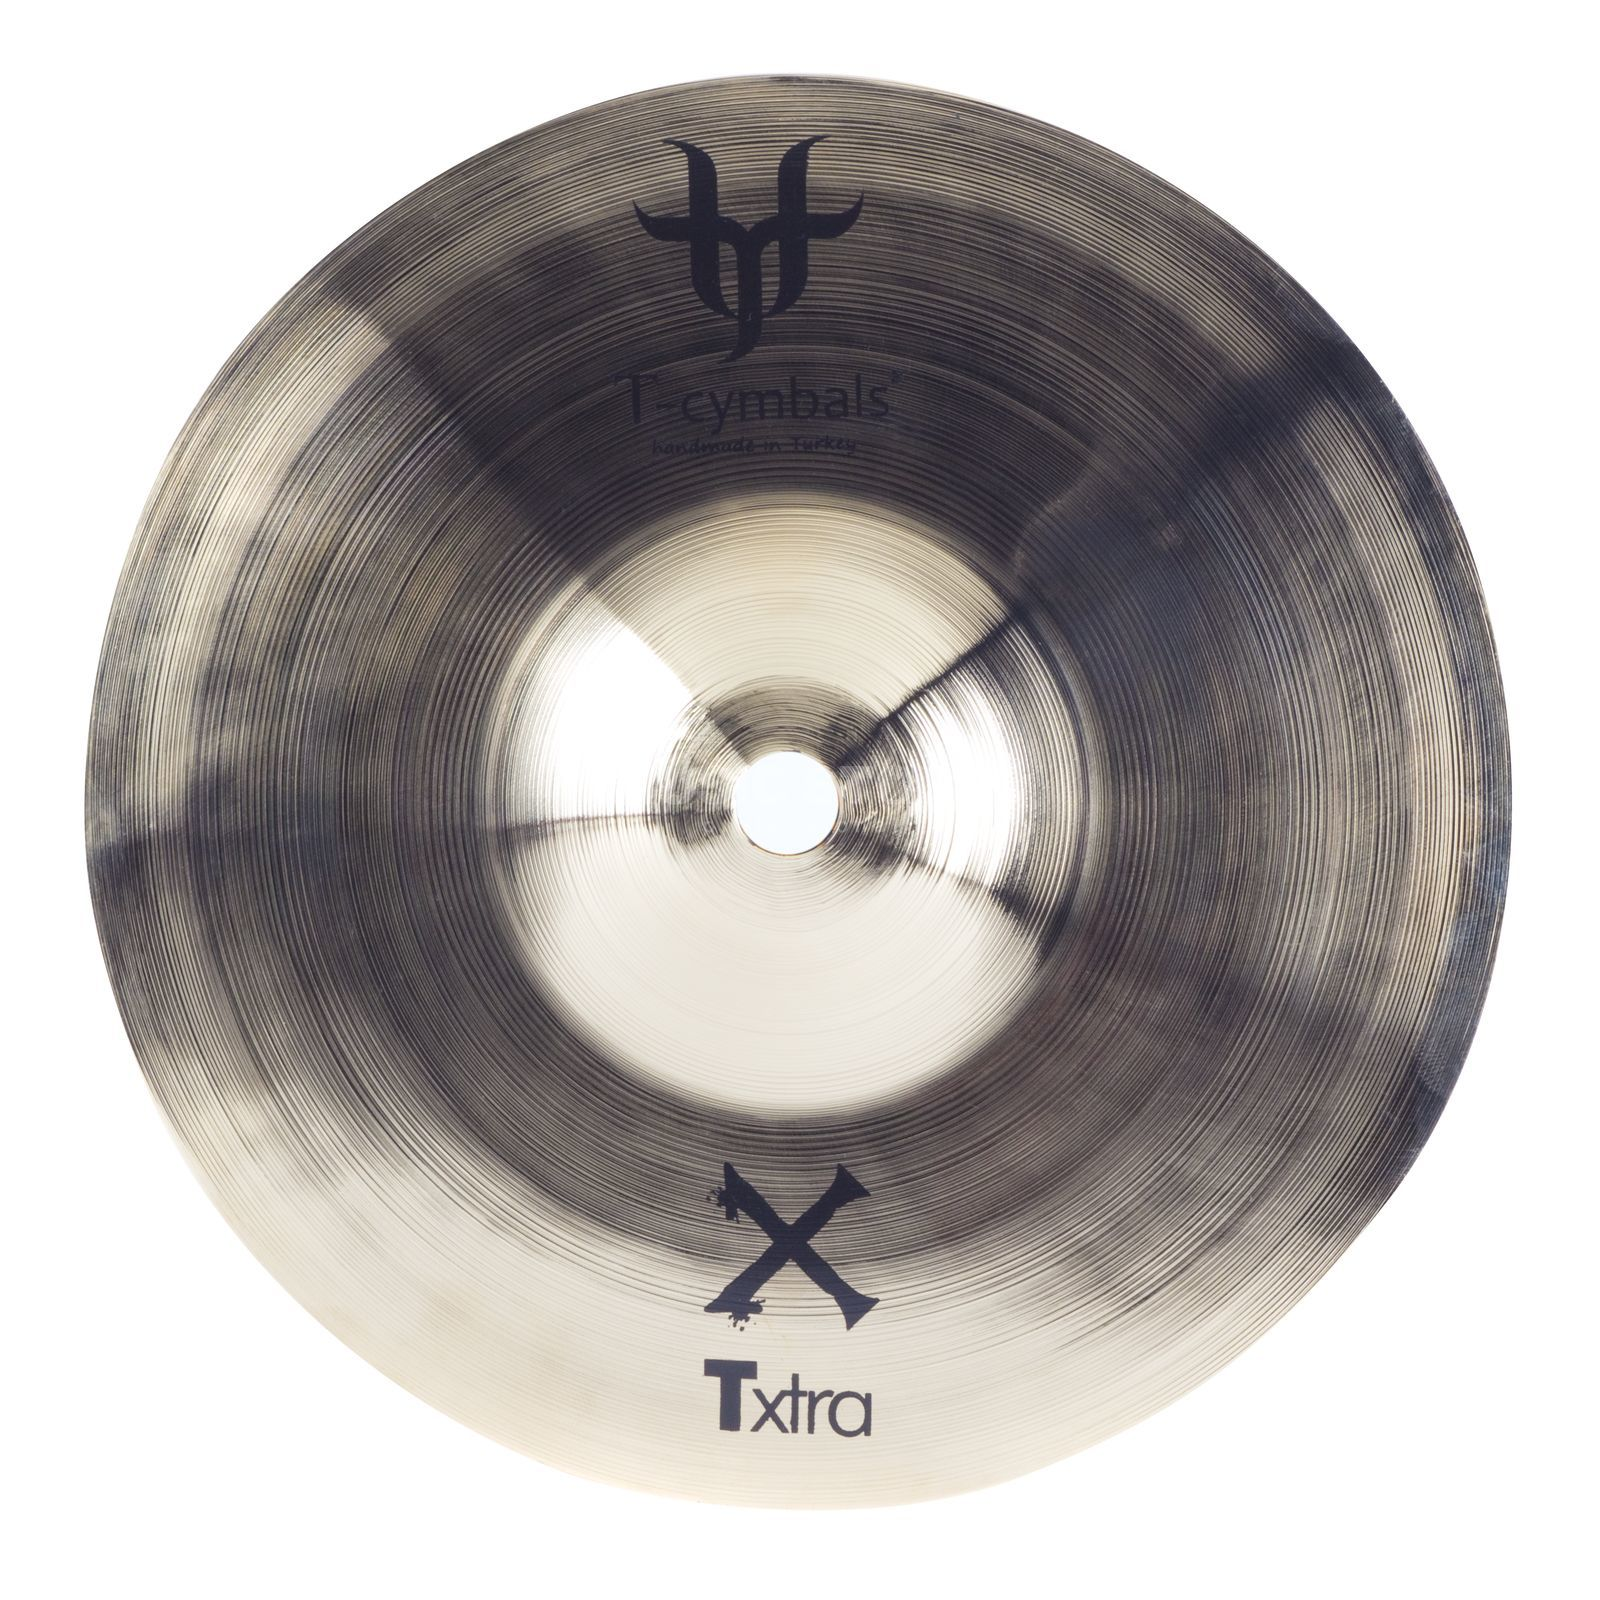 "T-Cymbals T-Xtra Splash 6""  Product Image"